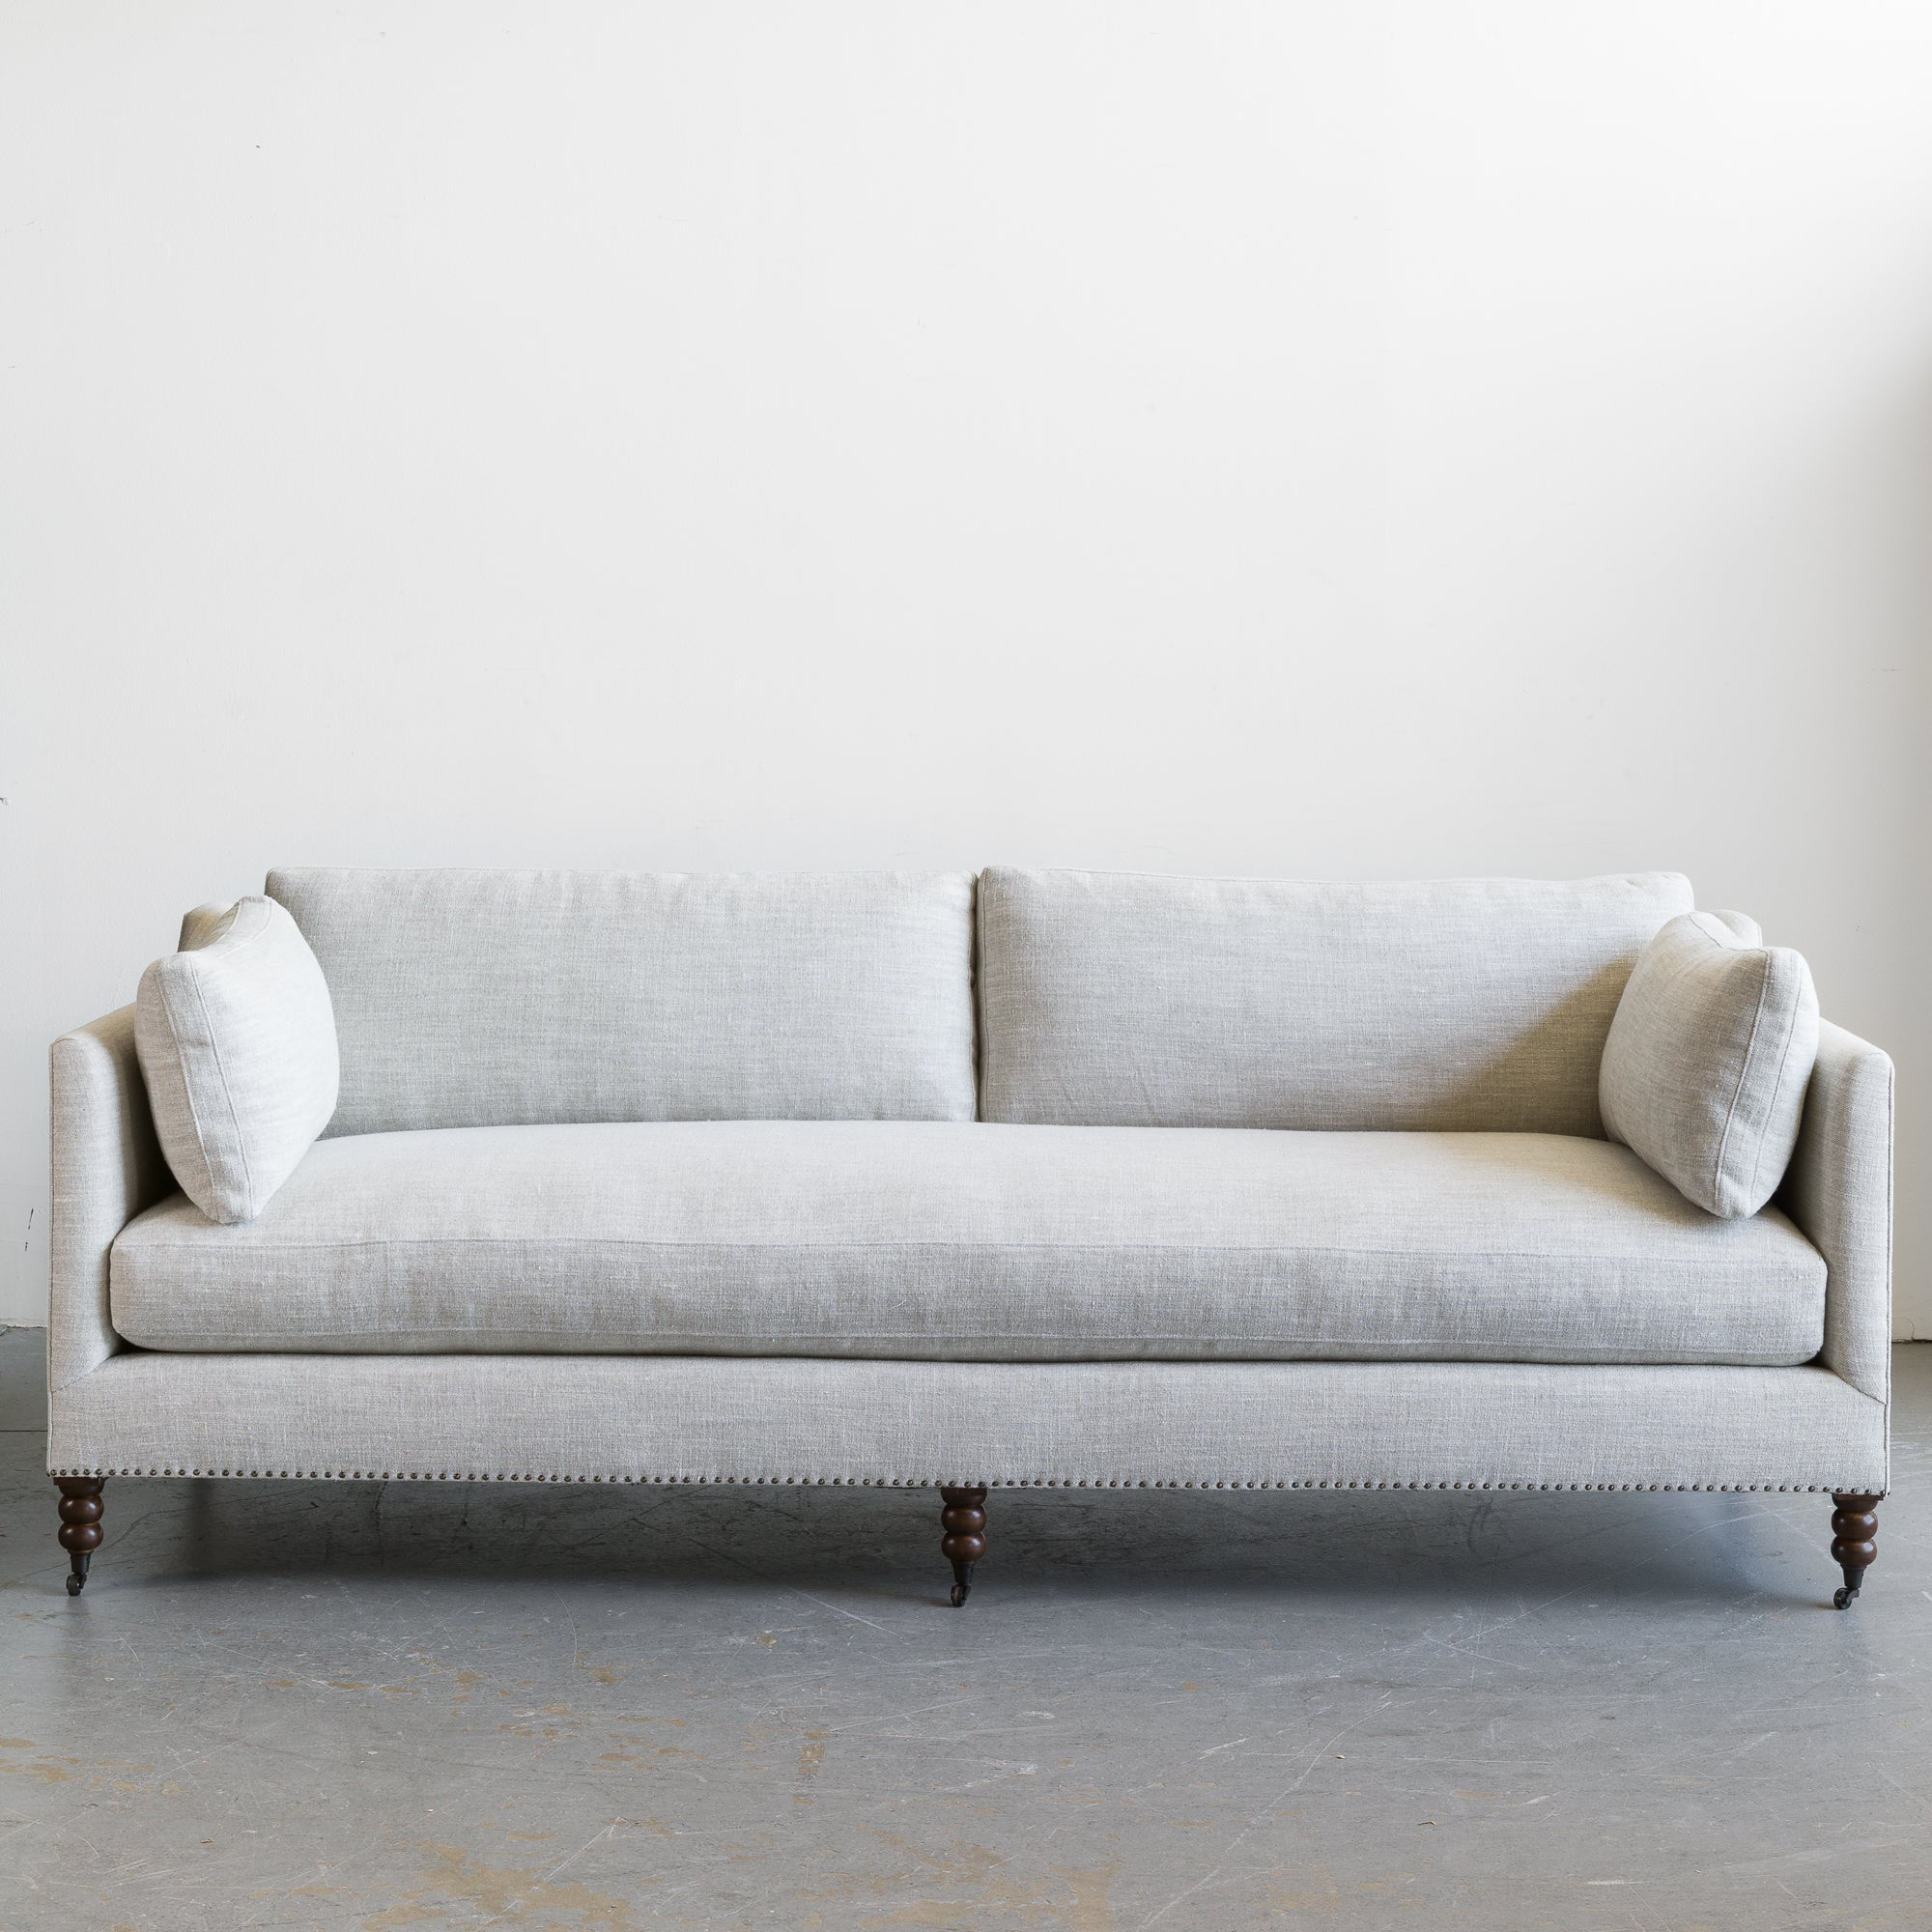 Riviera Sofa - Furniture - Line - Sofa – Shoppe Amber Interiors